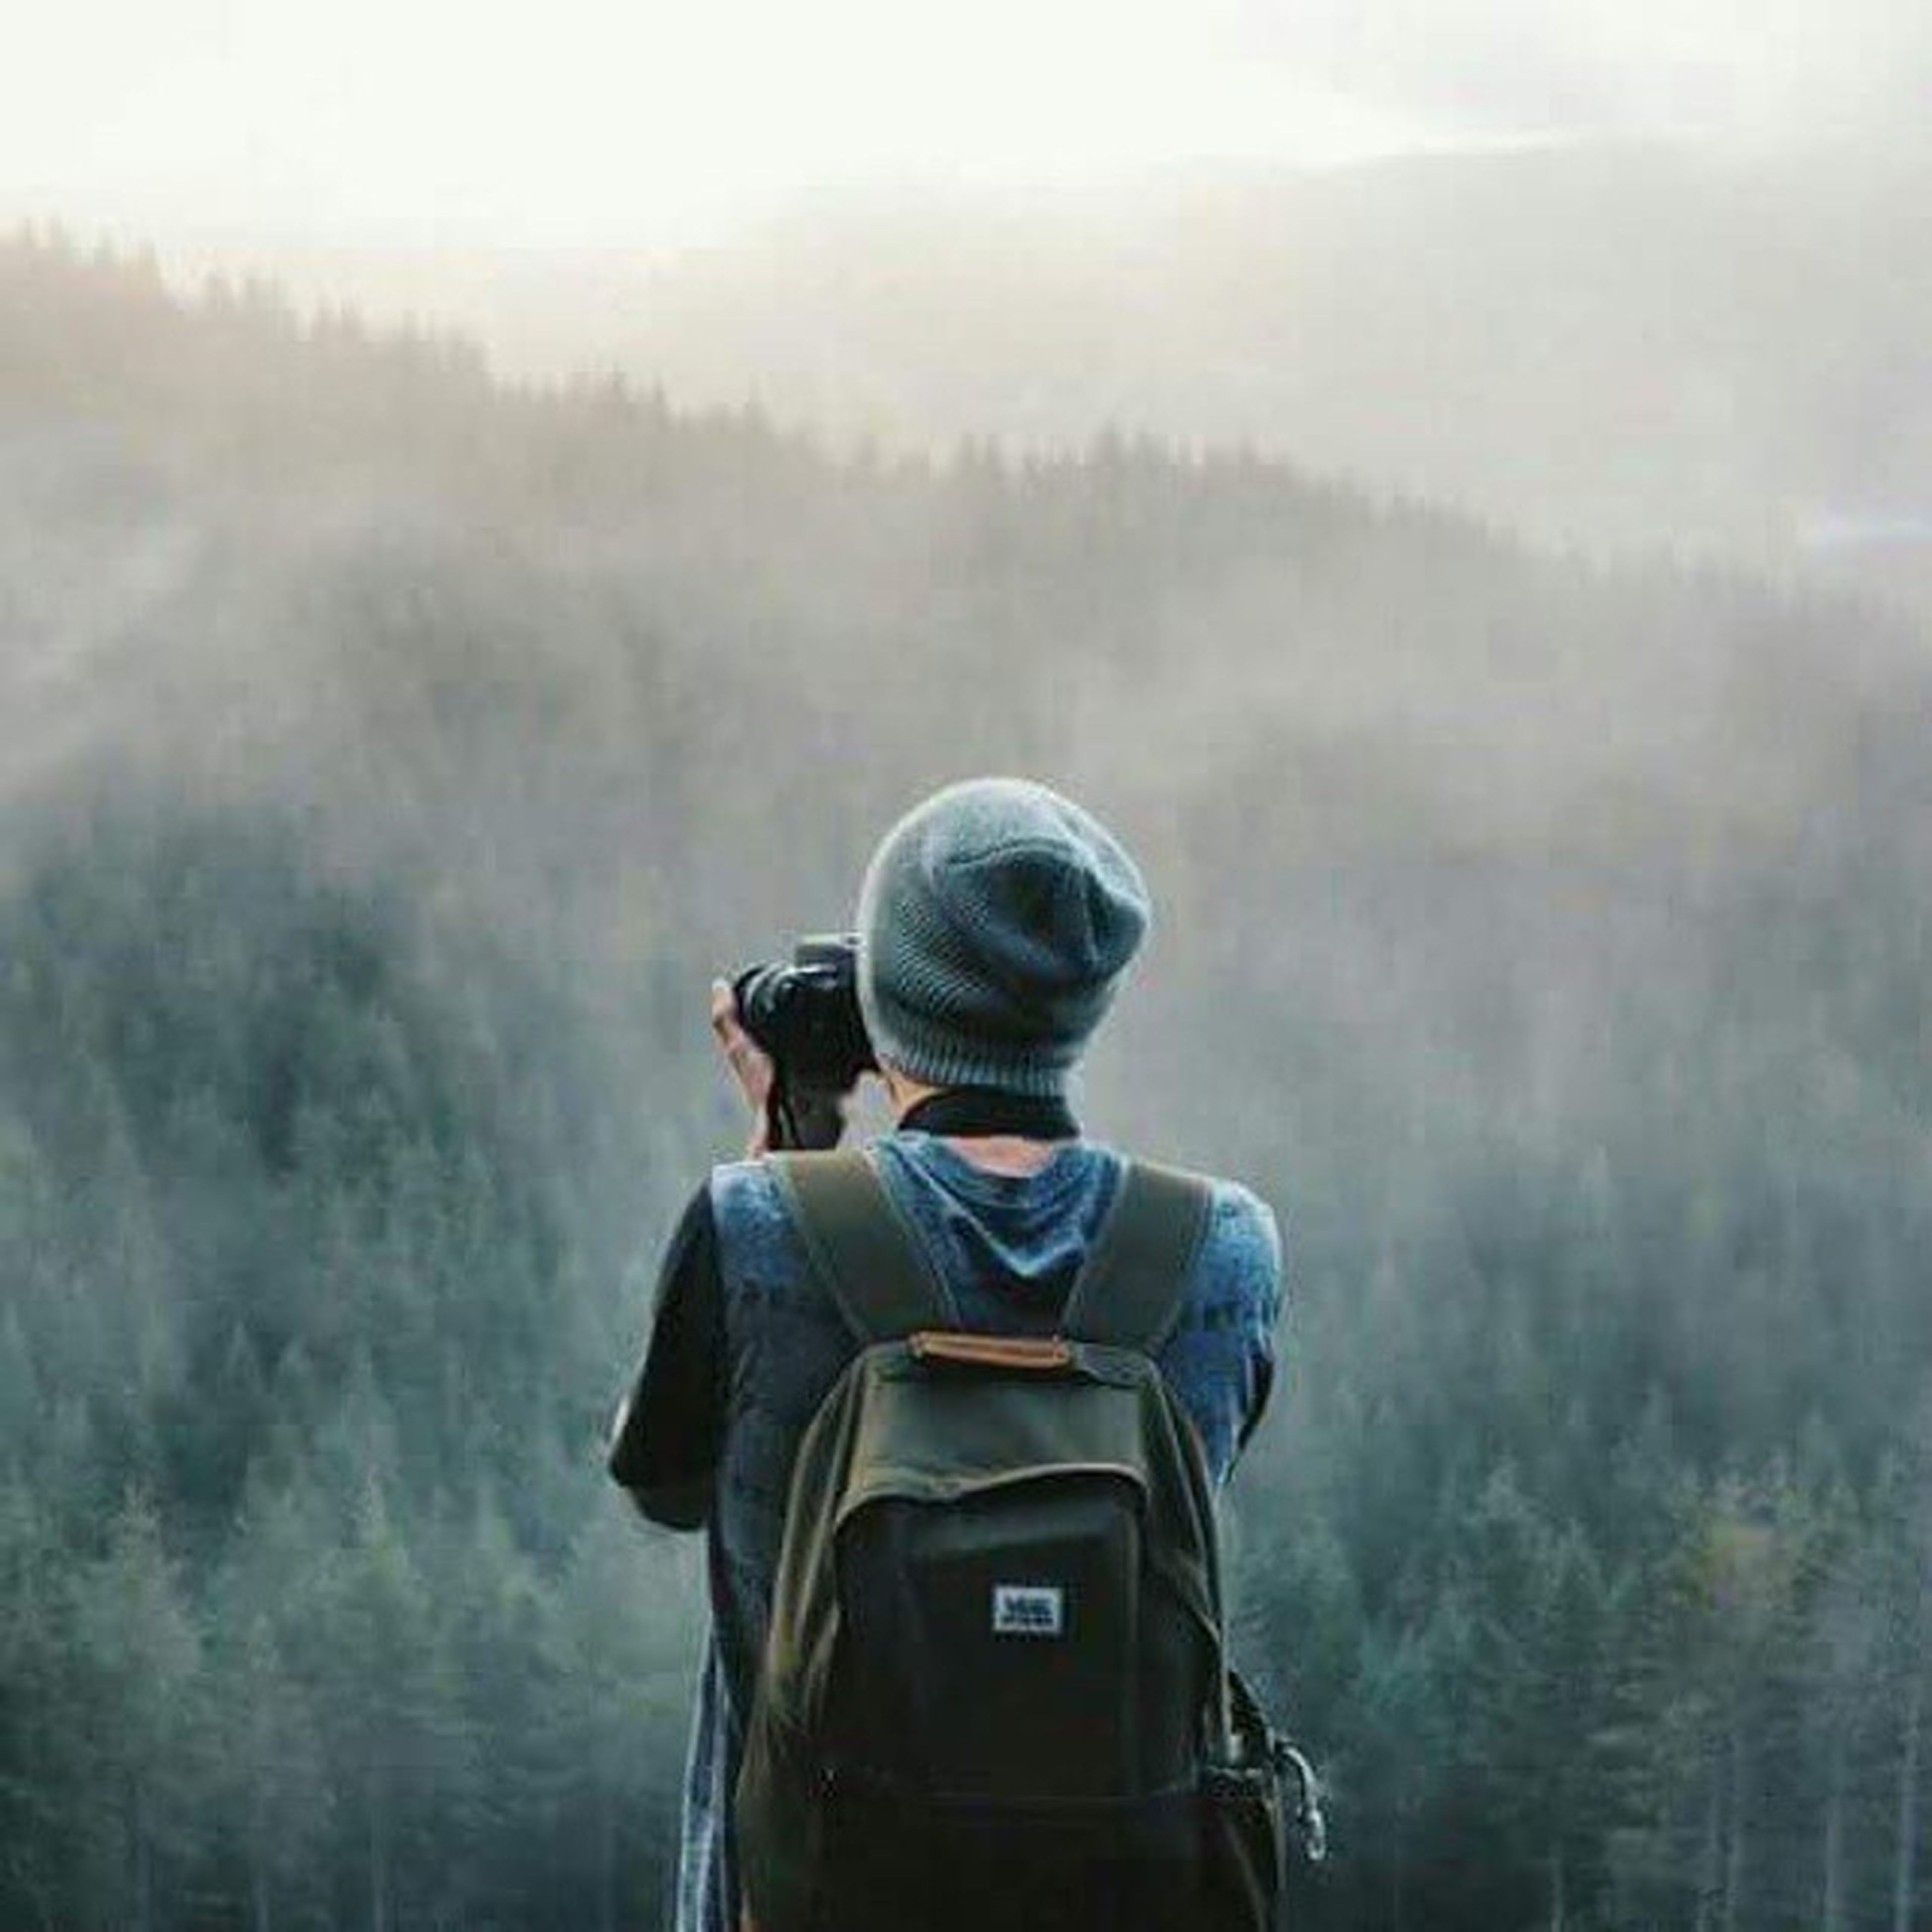 lifestyles, photography themes, leisure activity, photographing, camera - photographic equipment, rear view, technology, sitting, men, holding, digital camera, wireless technology, casual clothing, waist up, focus on foreground, three quarter length, photographer, hobbies